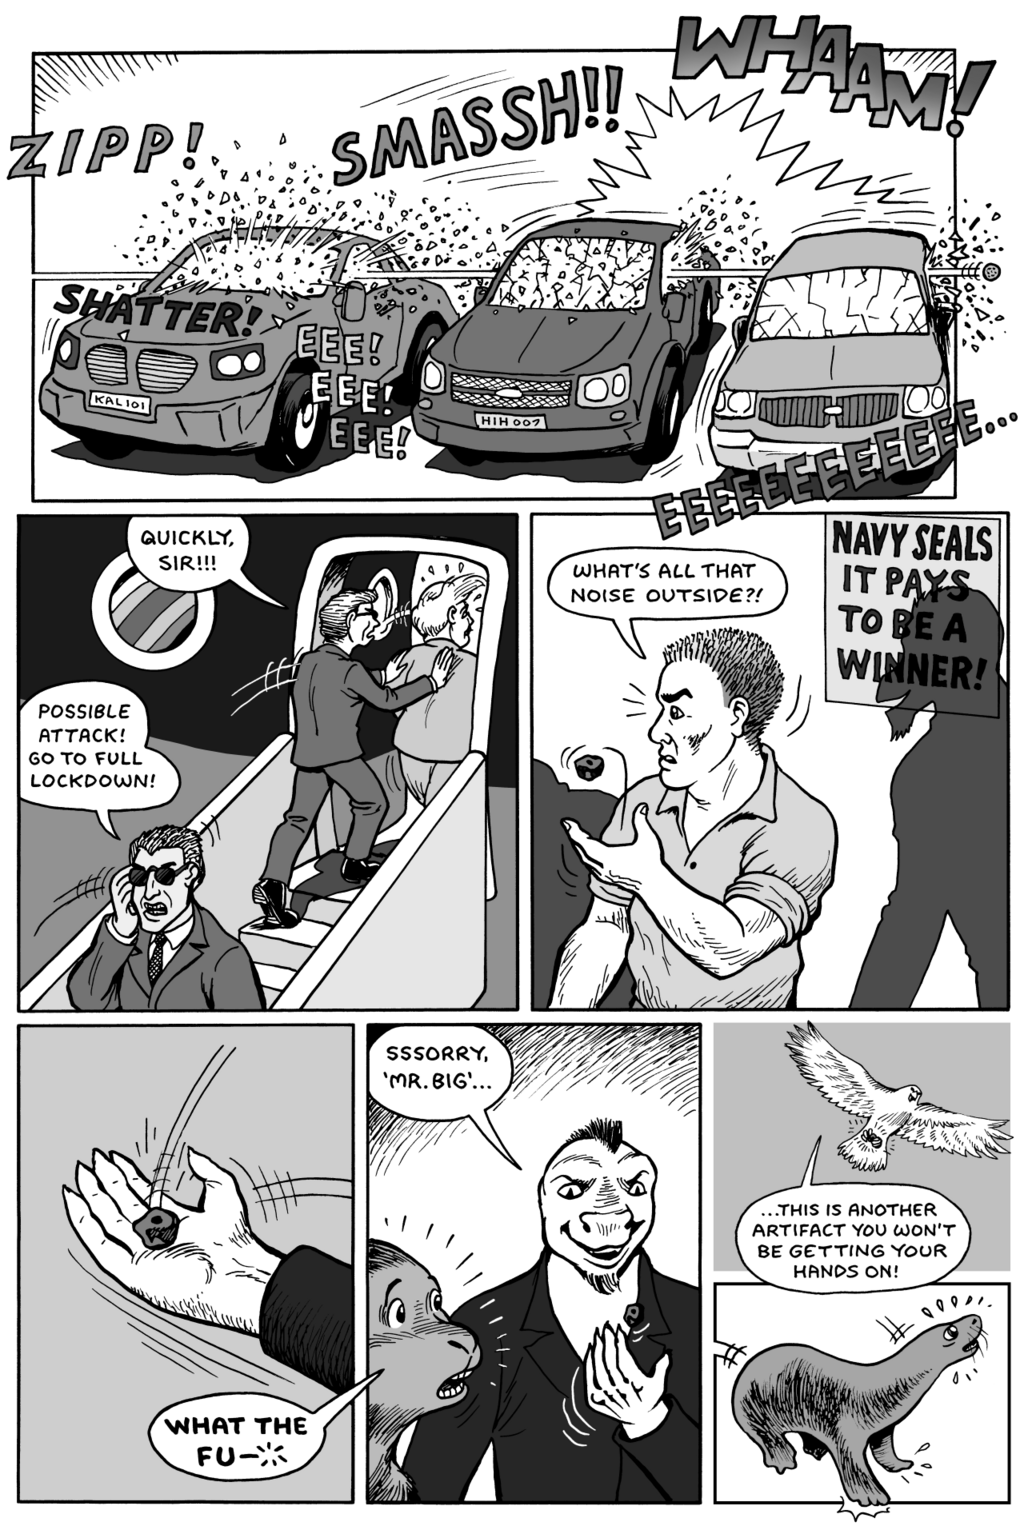 Komos & Goldie comic by Karno, page 14